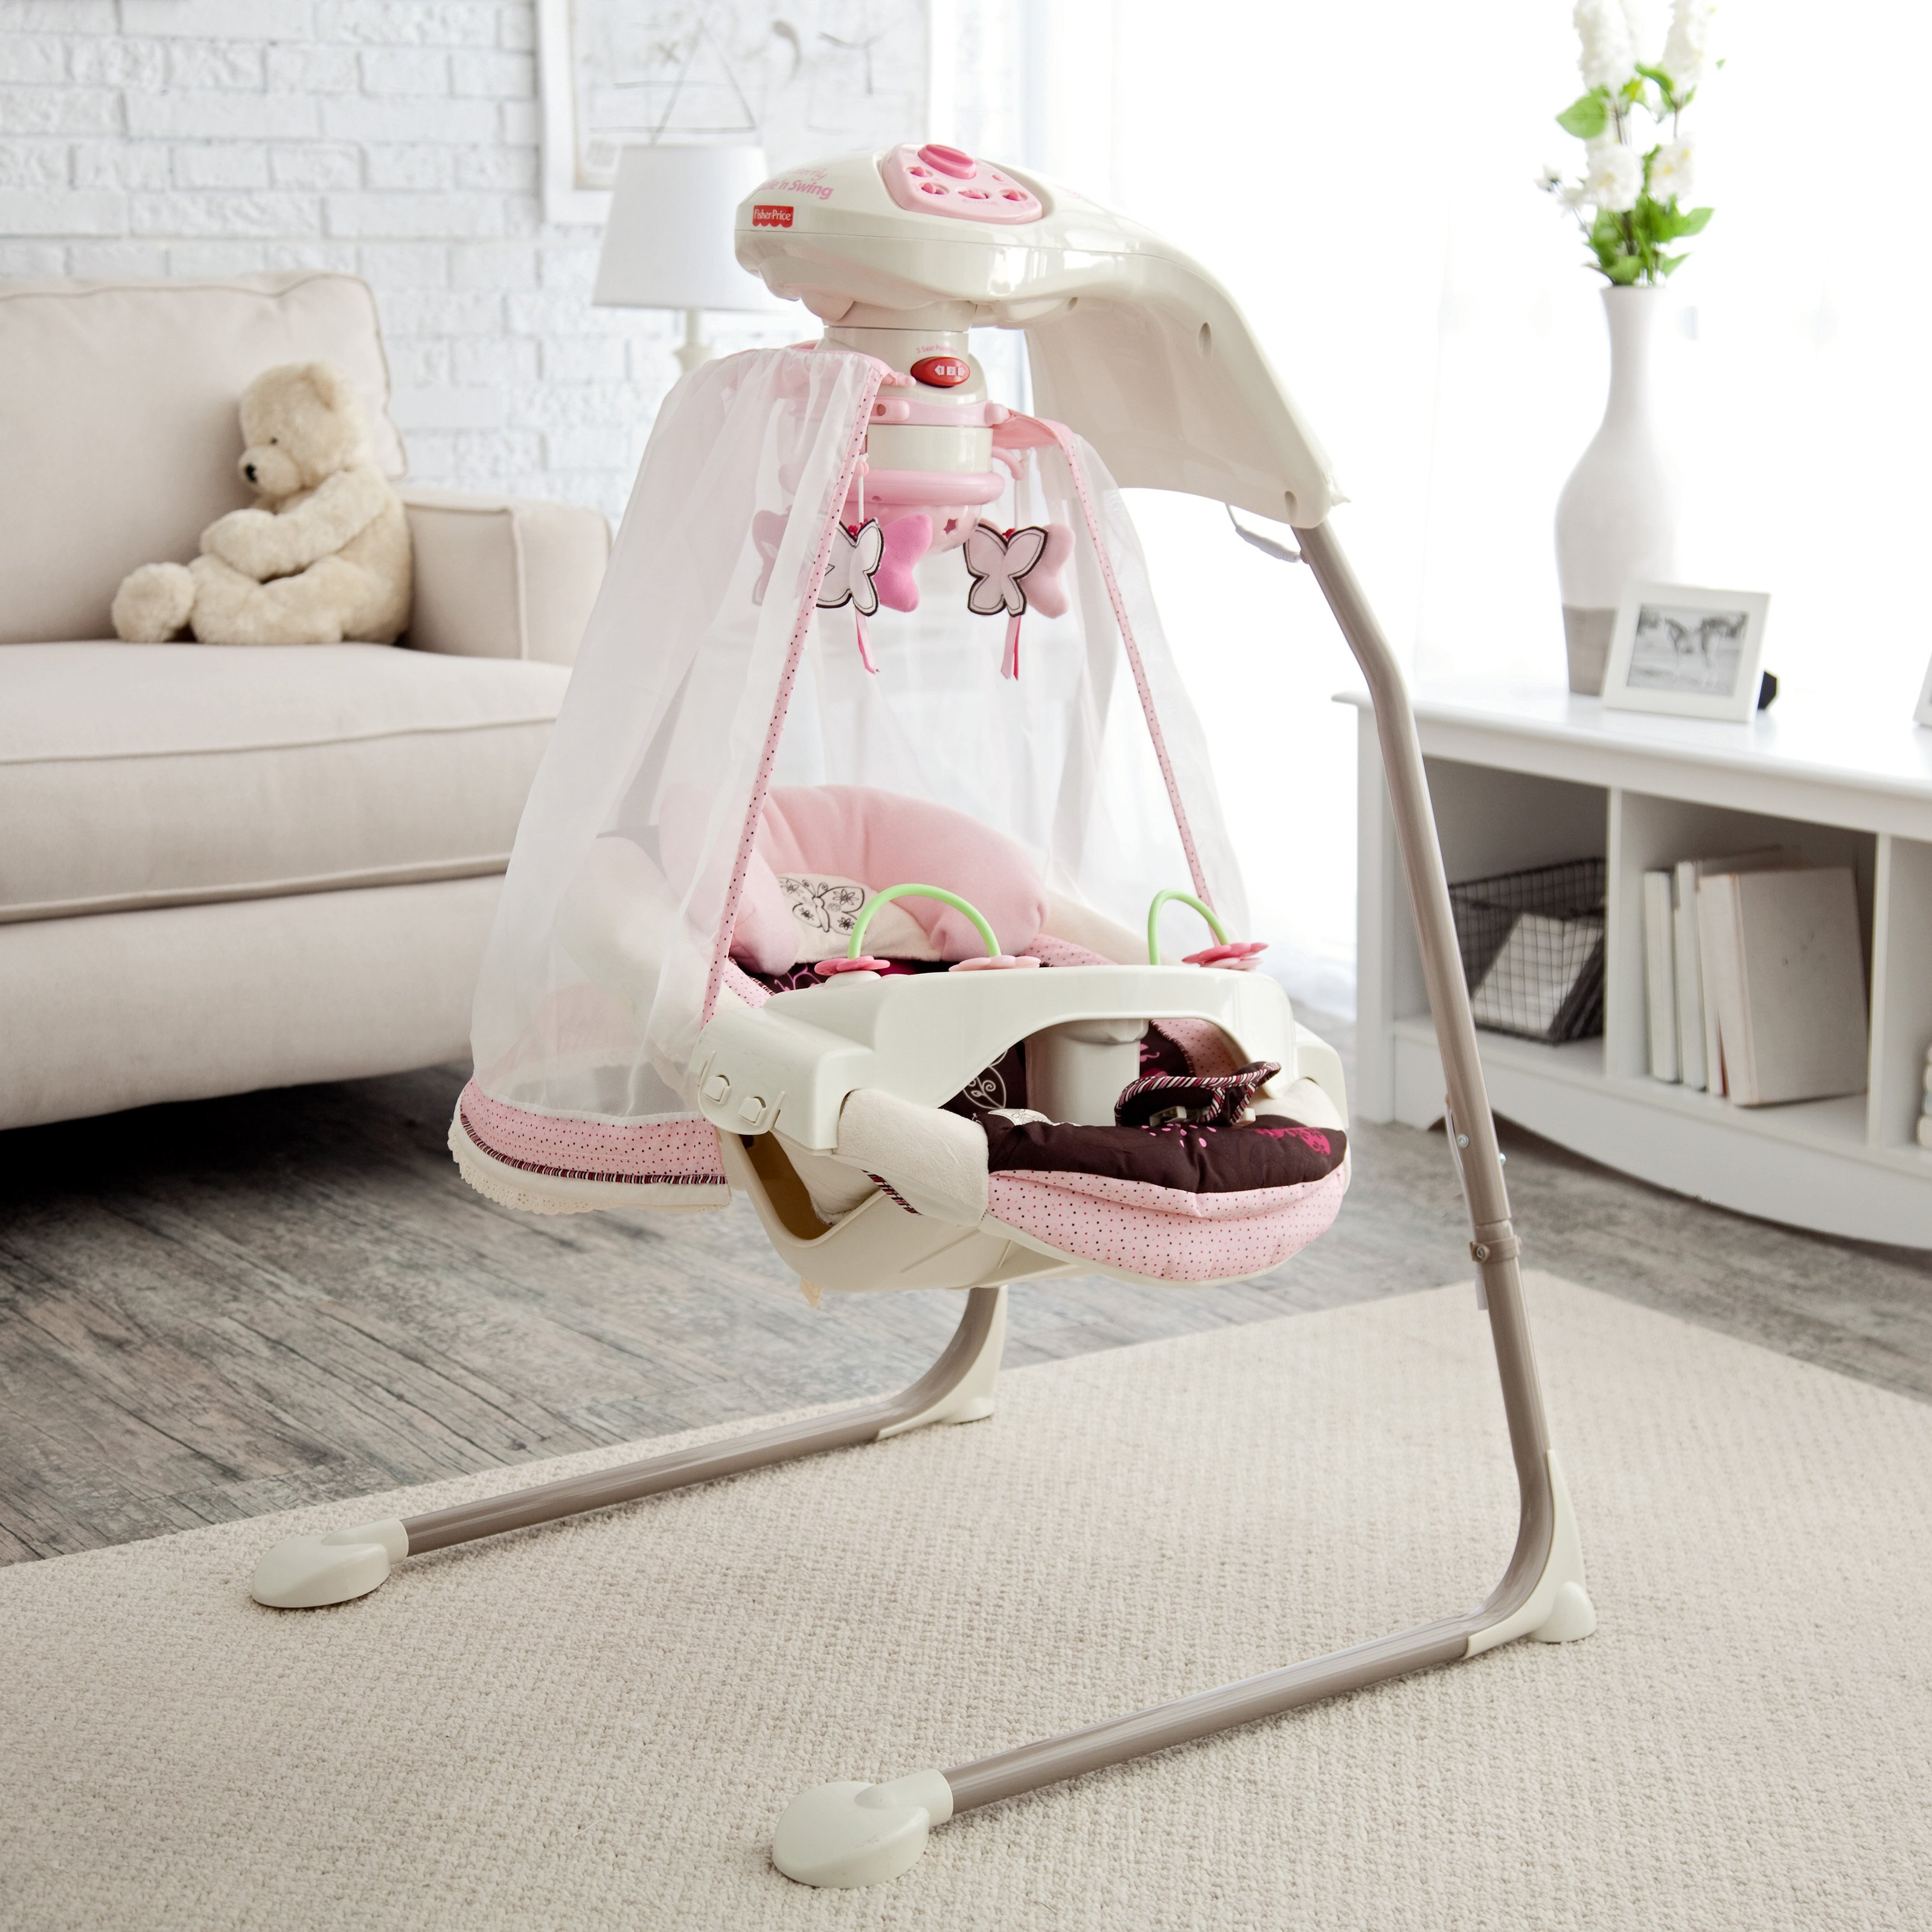 ᐅ Best Baby Swings Reviews Compare Now